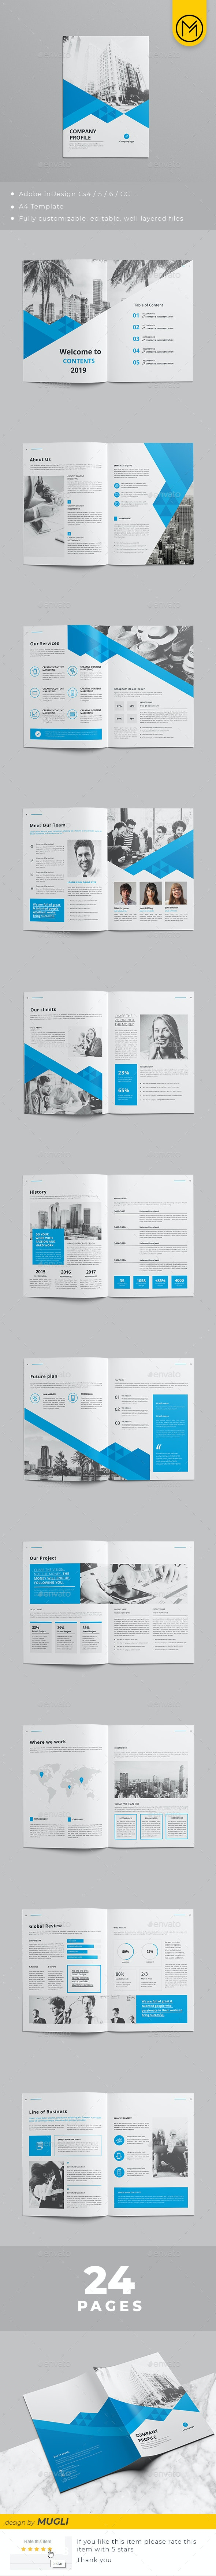 Company Brochure - Corporate Brochures